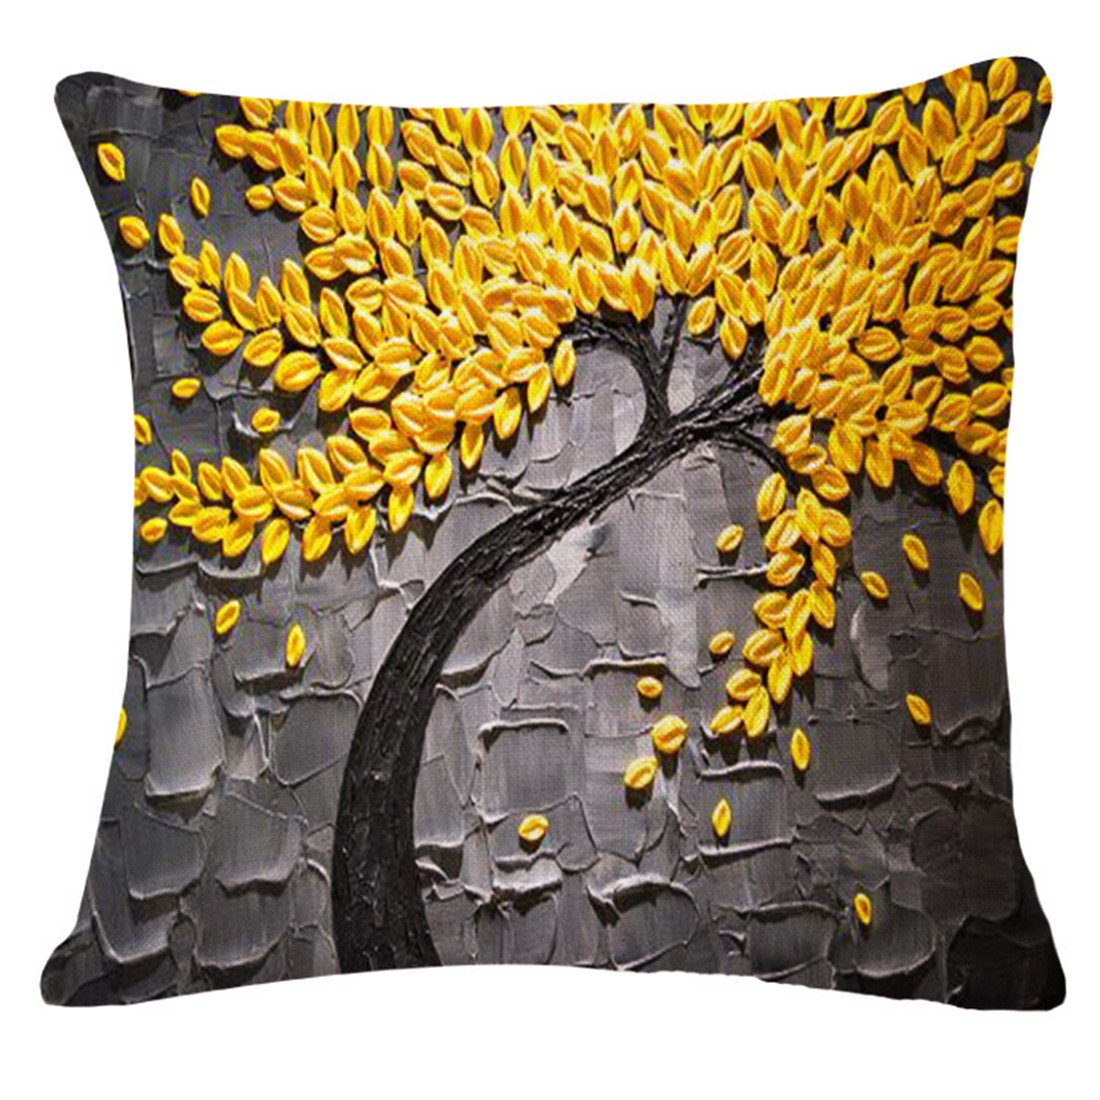 Hot pink flower bedding - Jinbeile Oil Painting Yellow Flower And Black Tree Cotton Linen Throw Pillow Cover Case Cushion Home